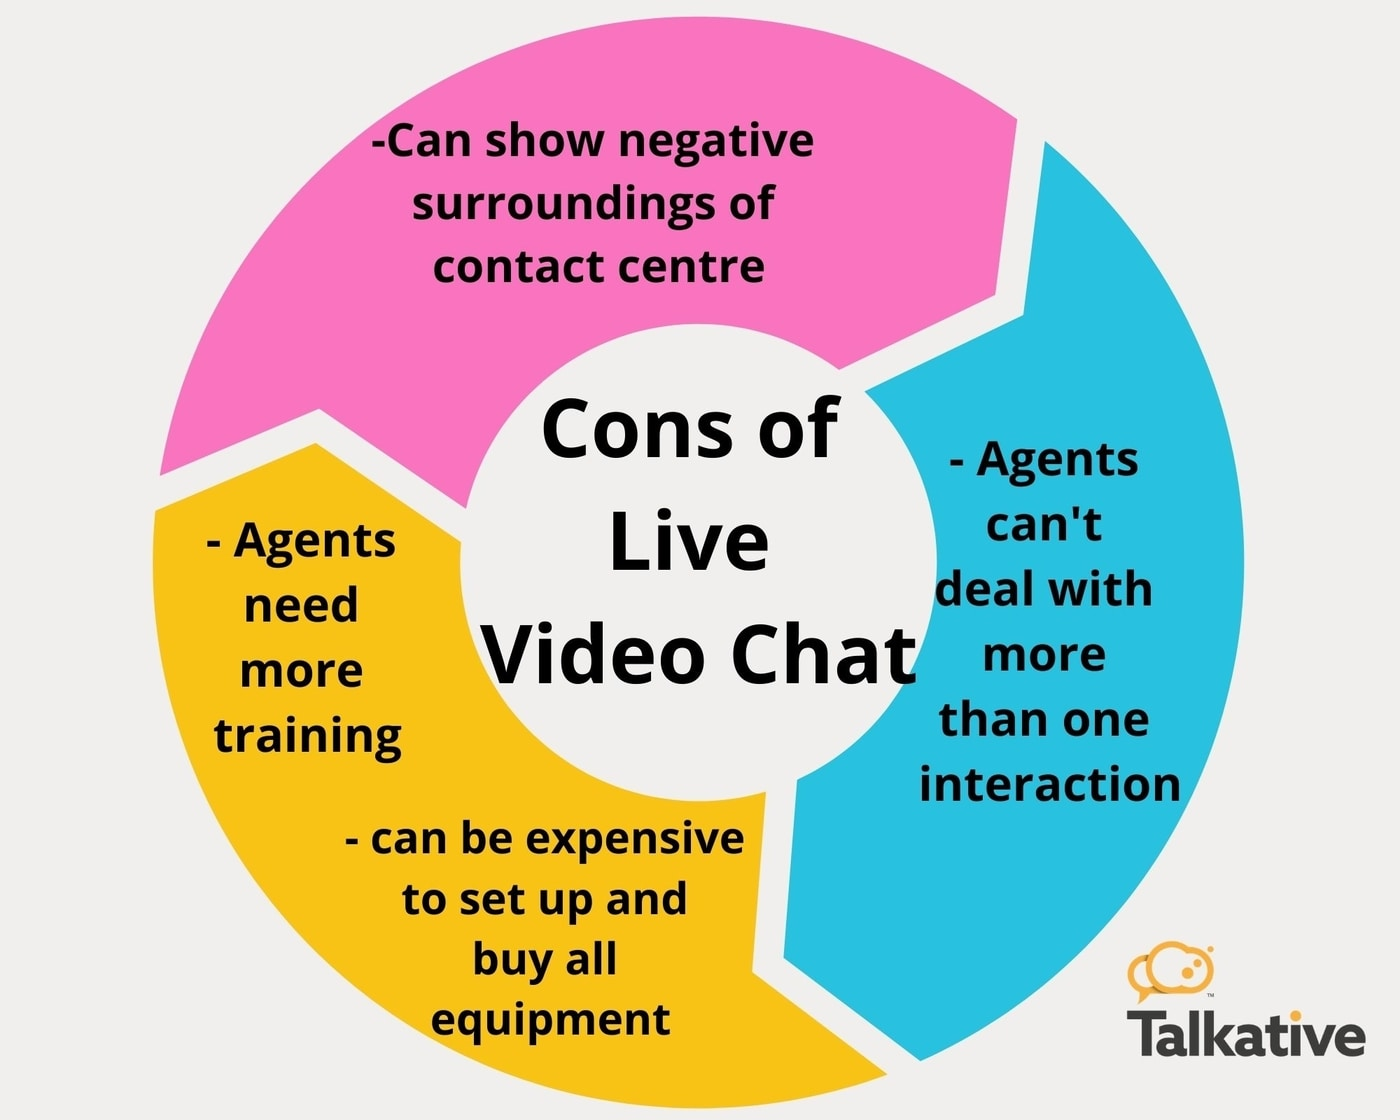 Cons of live video chat